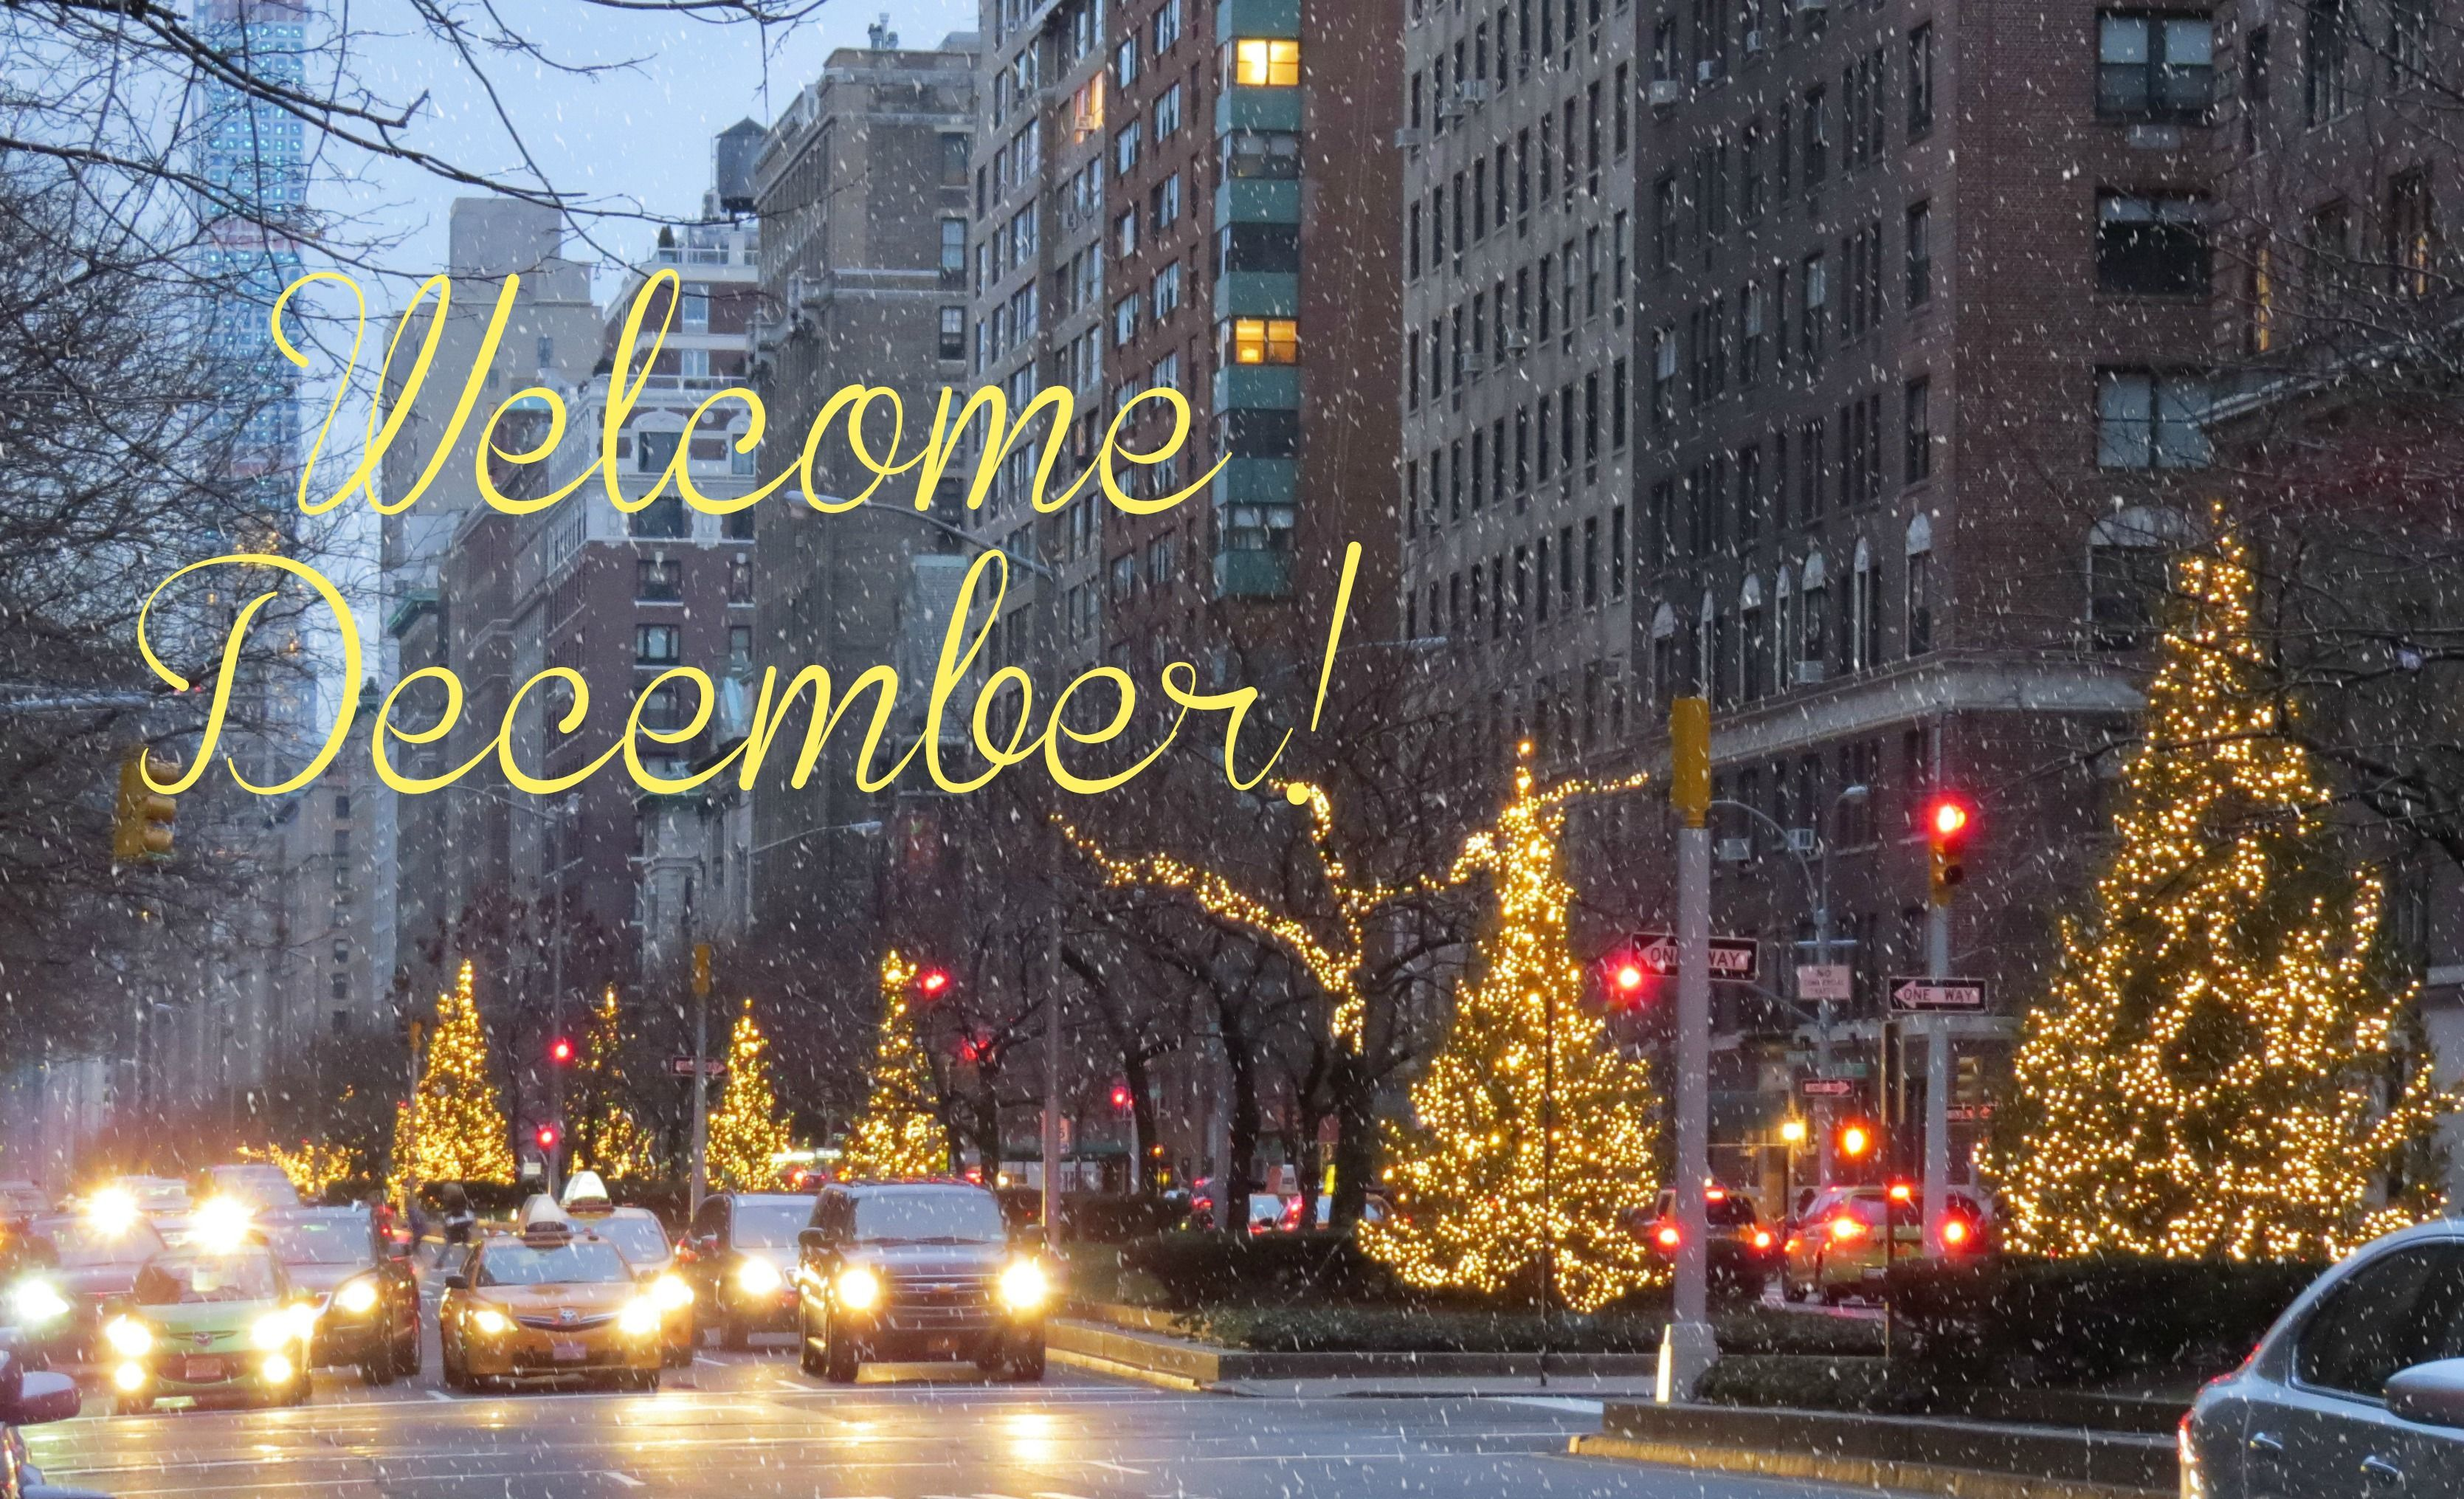 Welcome December Wallpaper #hellodecemberwallpaper Welcome December Wallpaper #hellodecemberwallpaper